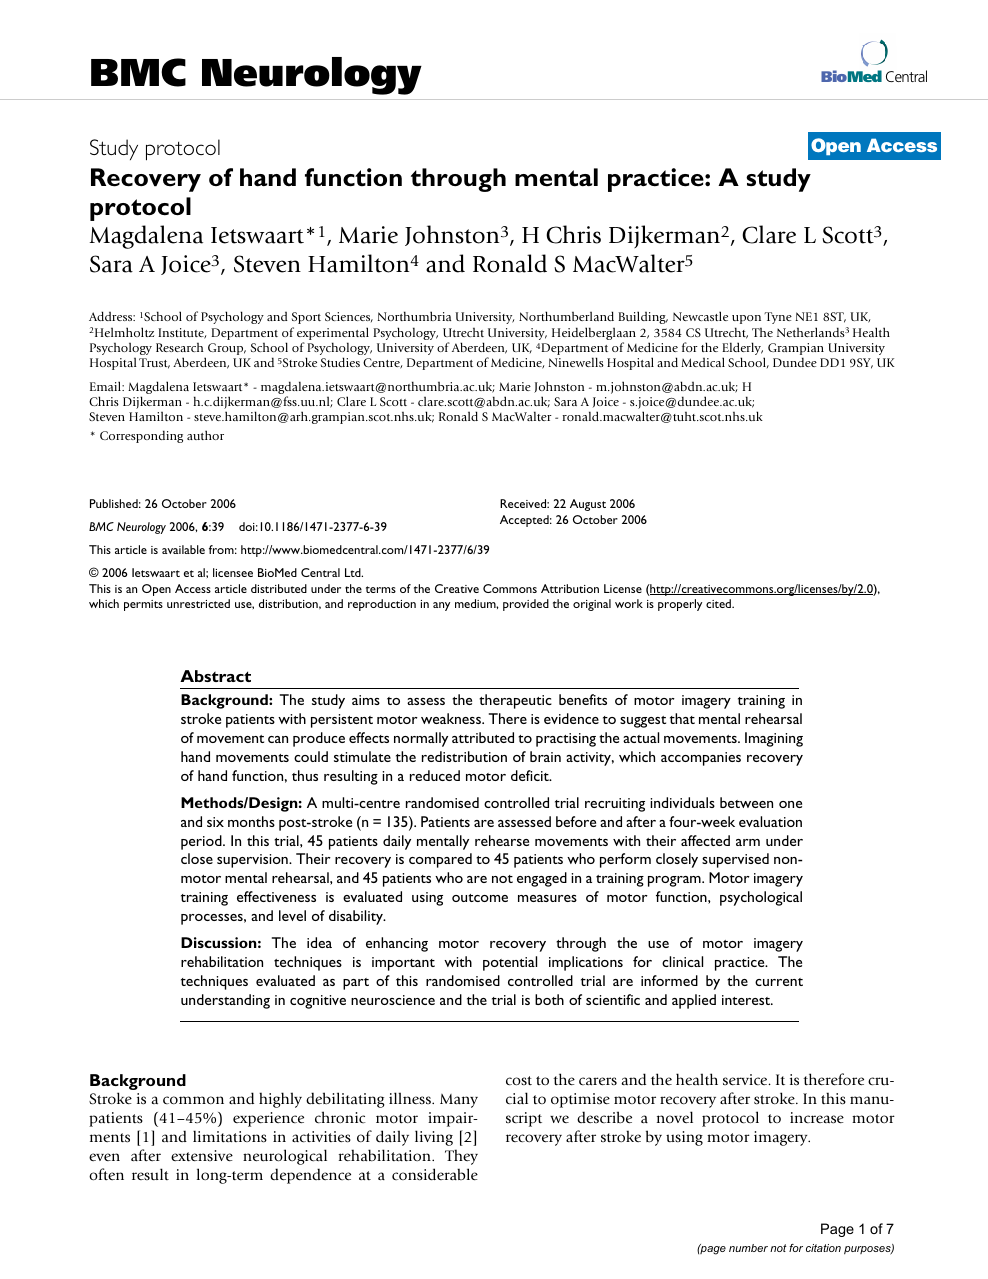 Recovery of hand function through mental practice: A study protocol